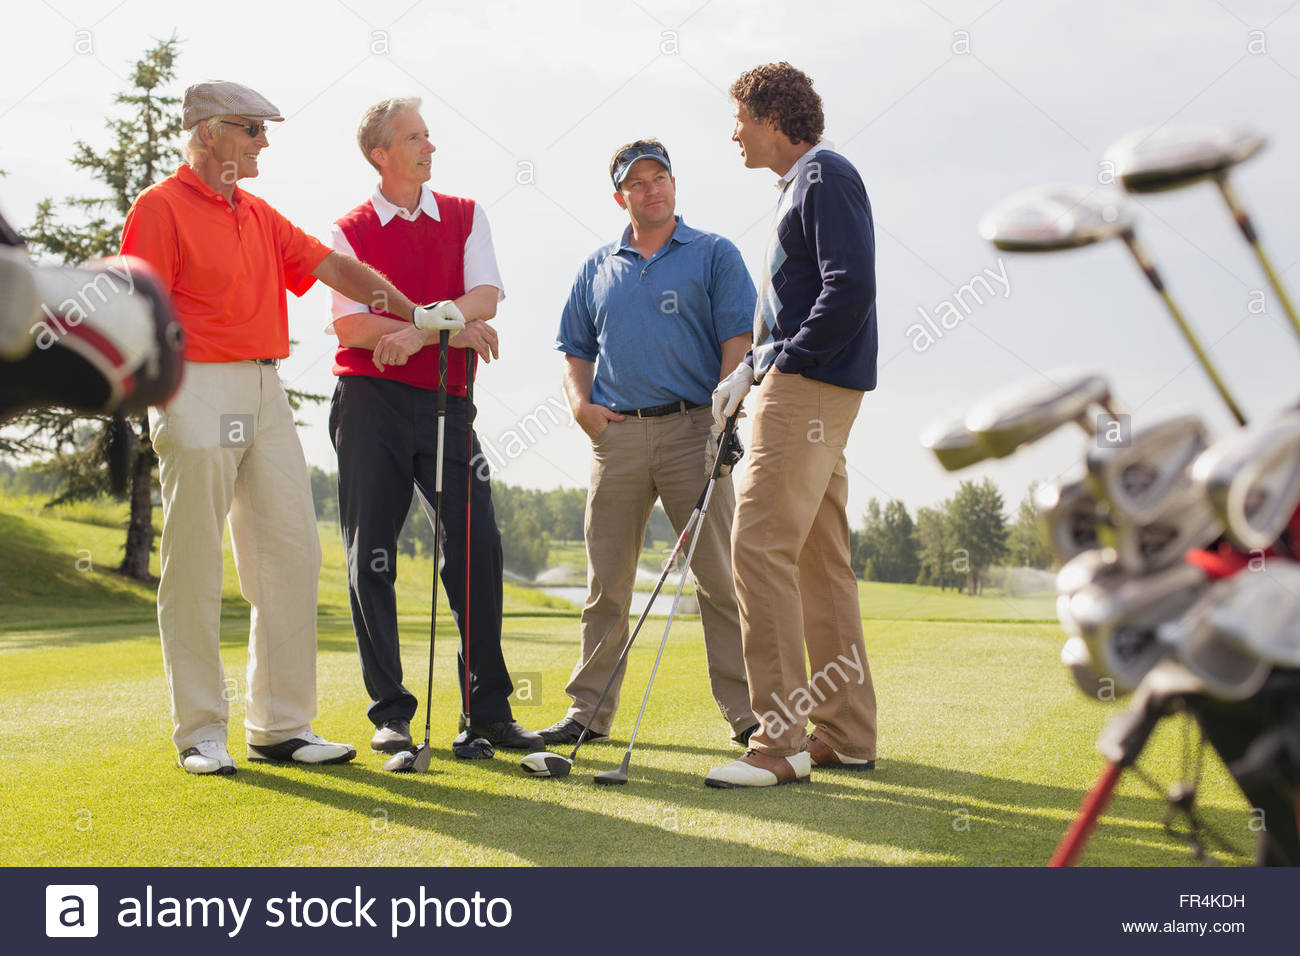 golfing foursome having a conversation on golf green - Stock Image